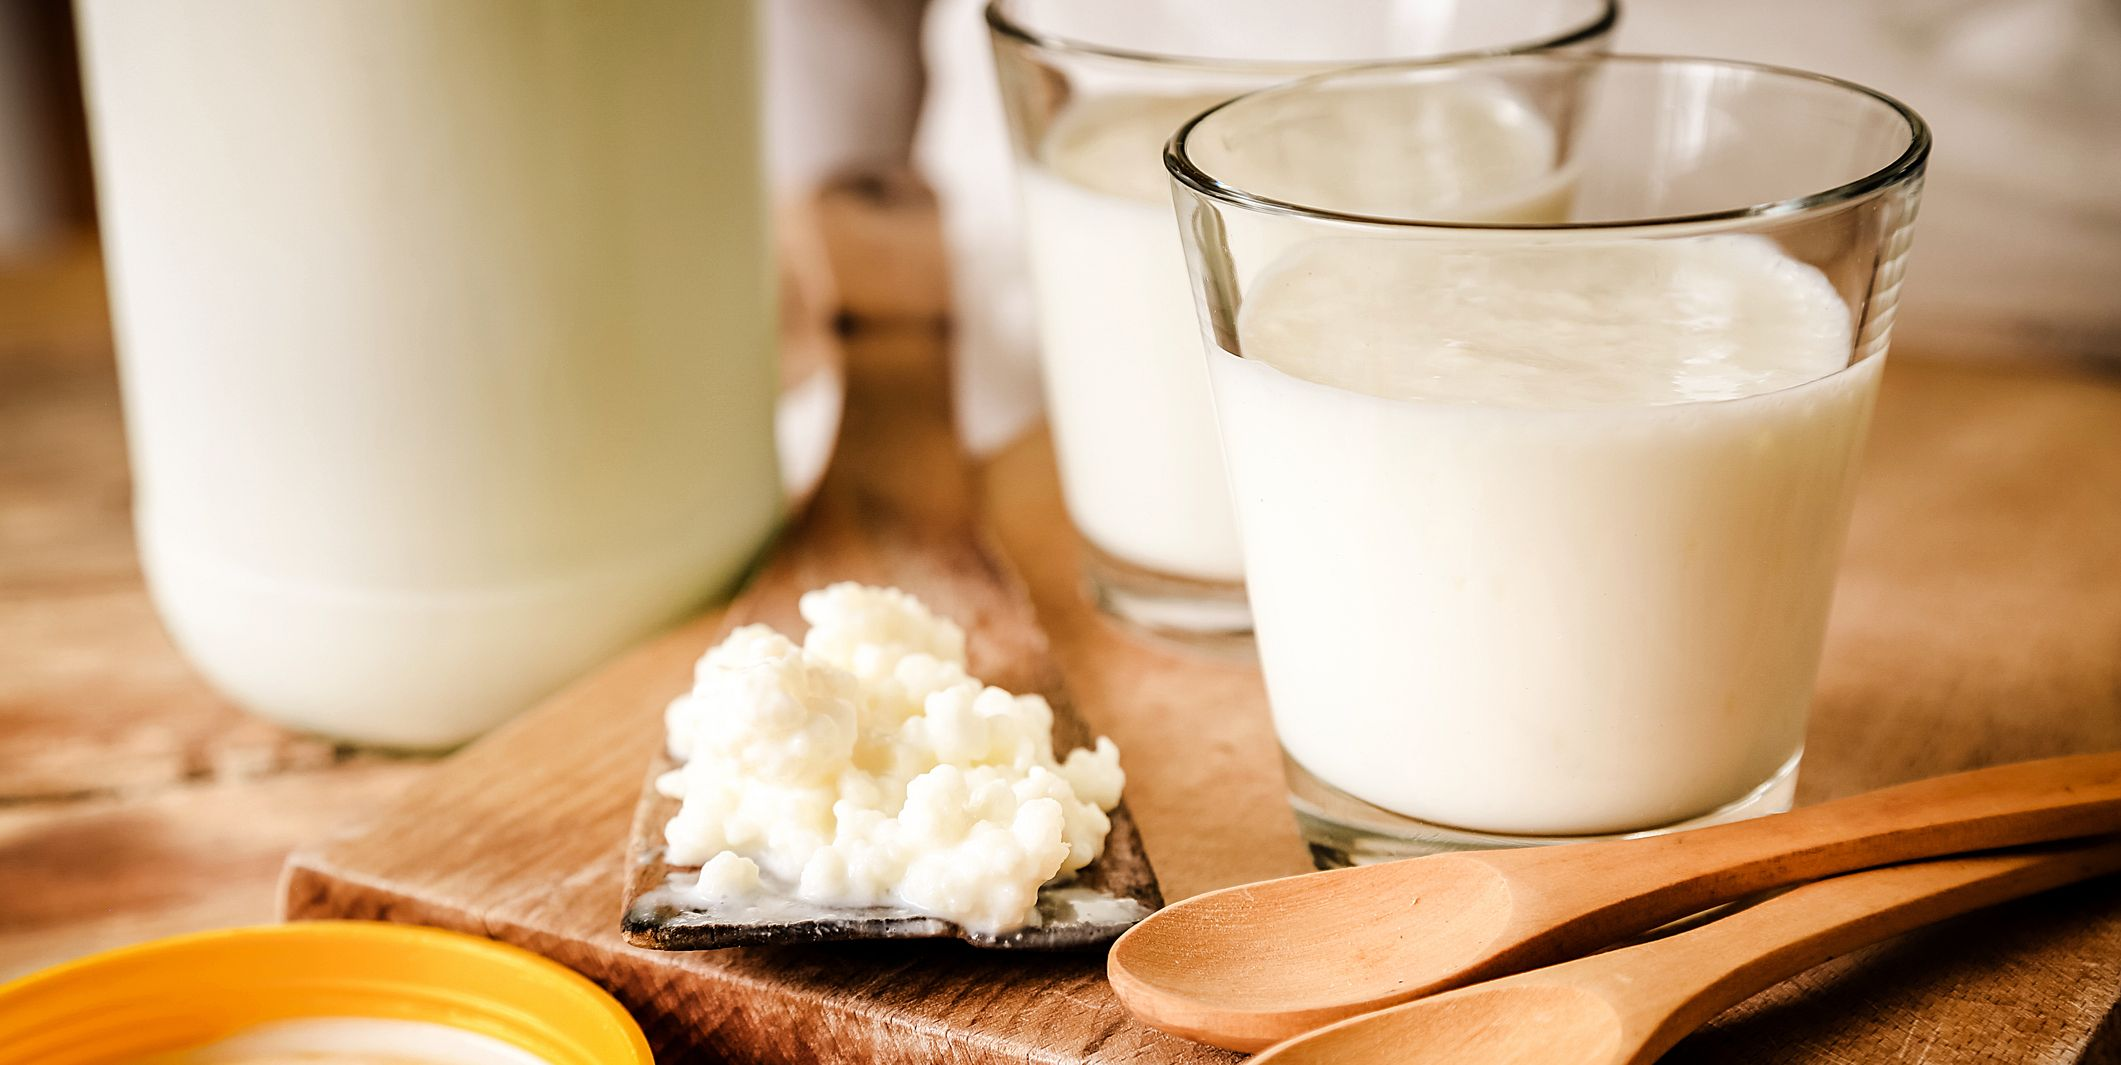 Kefir Grains In Wooden Spoon With Glass Of Kefir